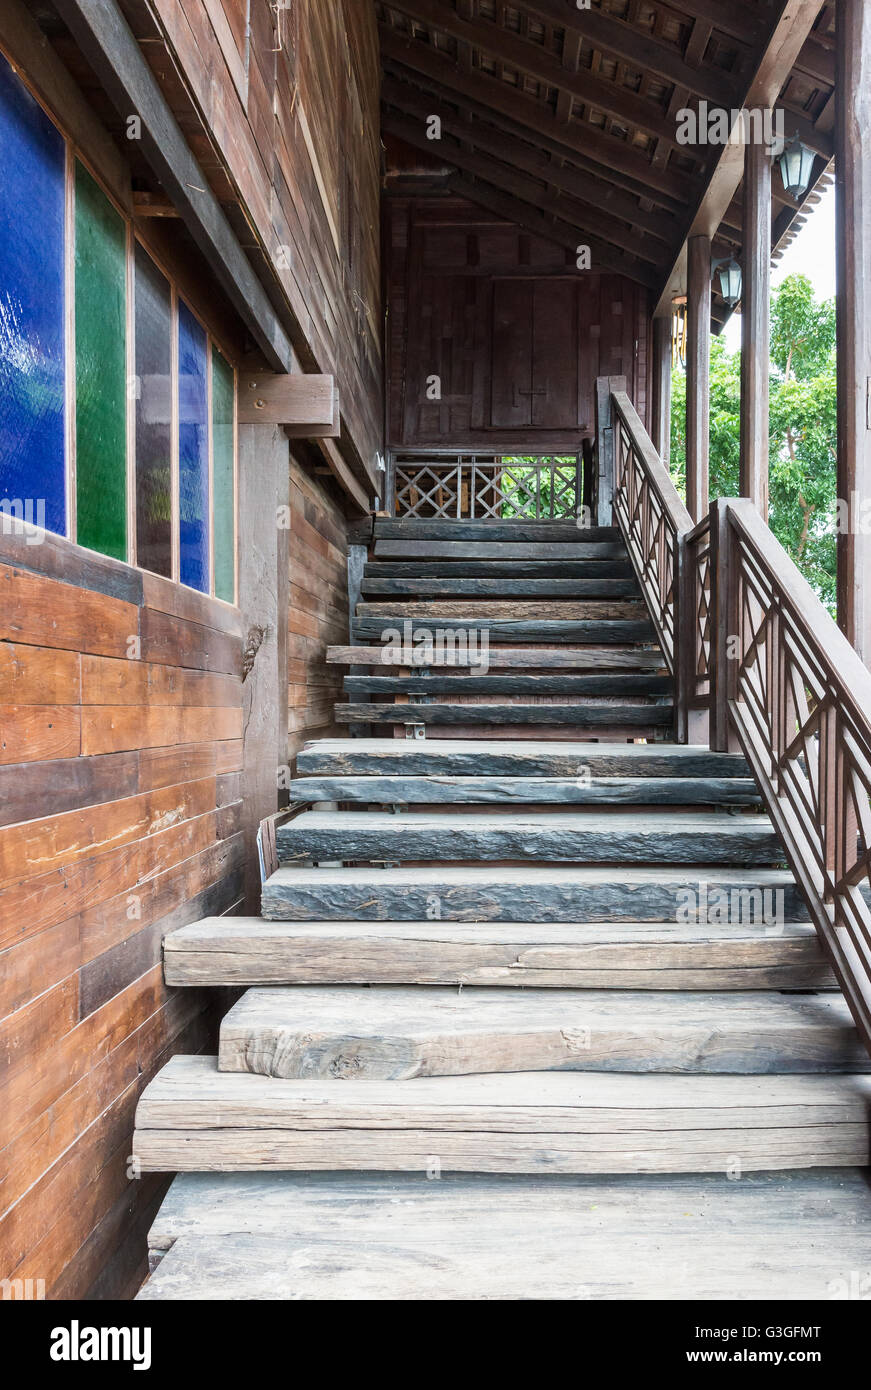 Wooden staircases to the top floor of the old house. - Stock Image